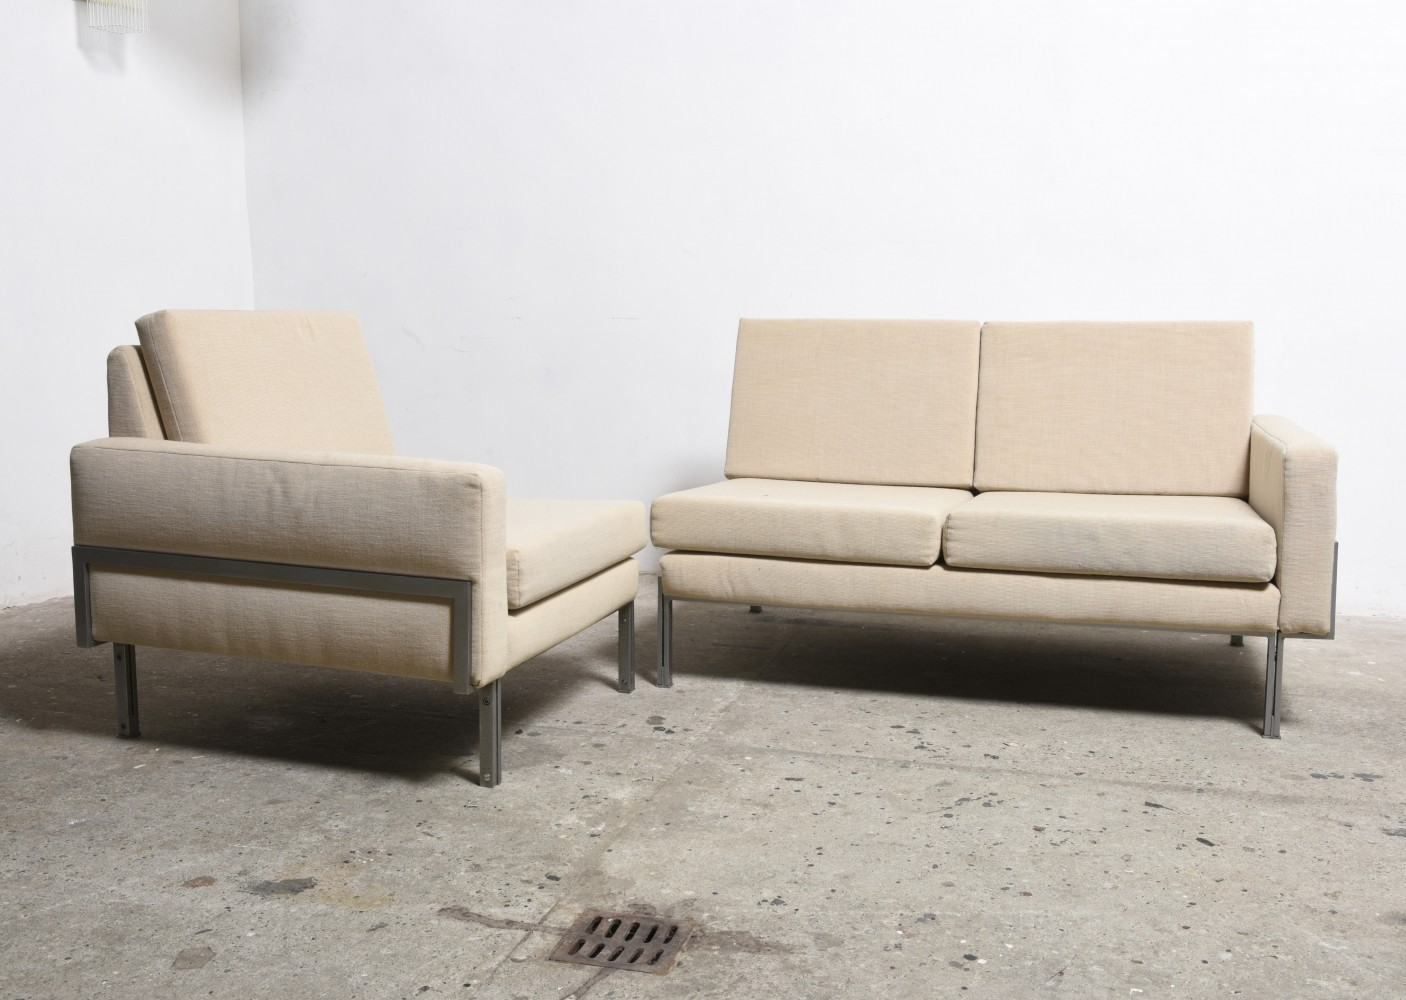 Mid Century Modern Modular Sectional Sofa By Florence Knoll 1960s 71514